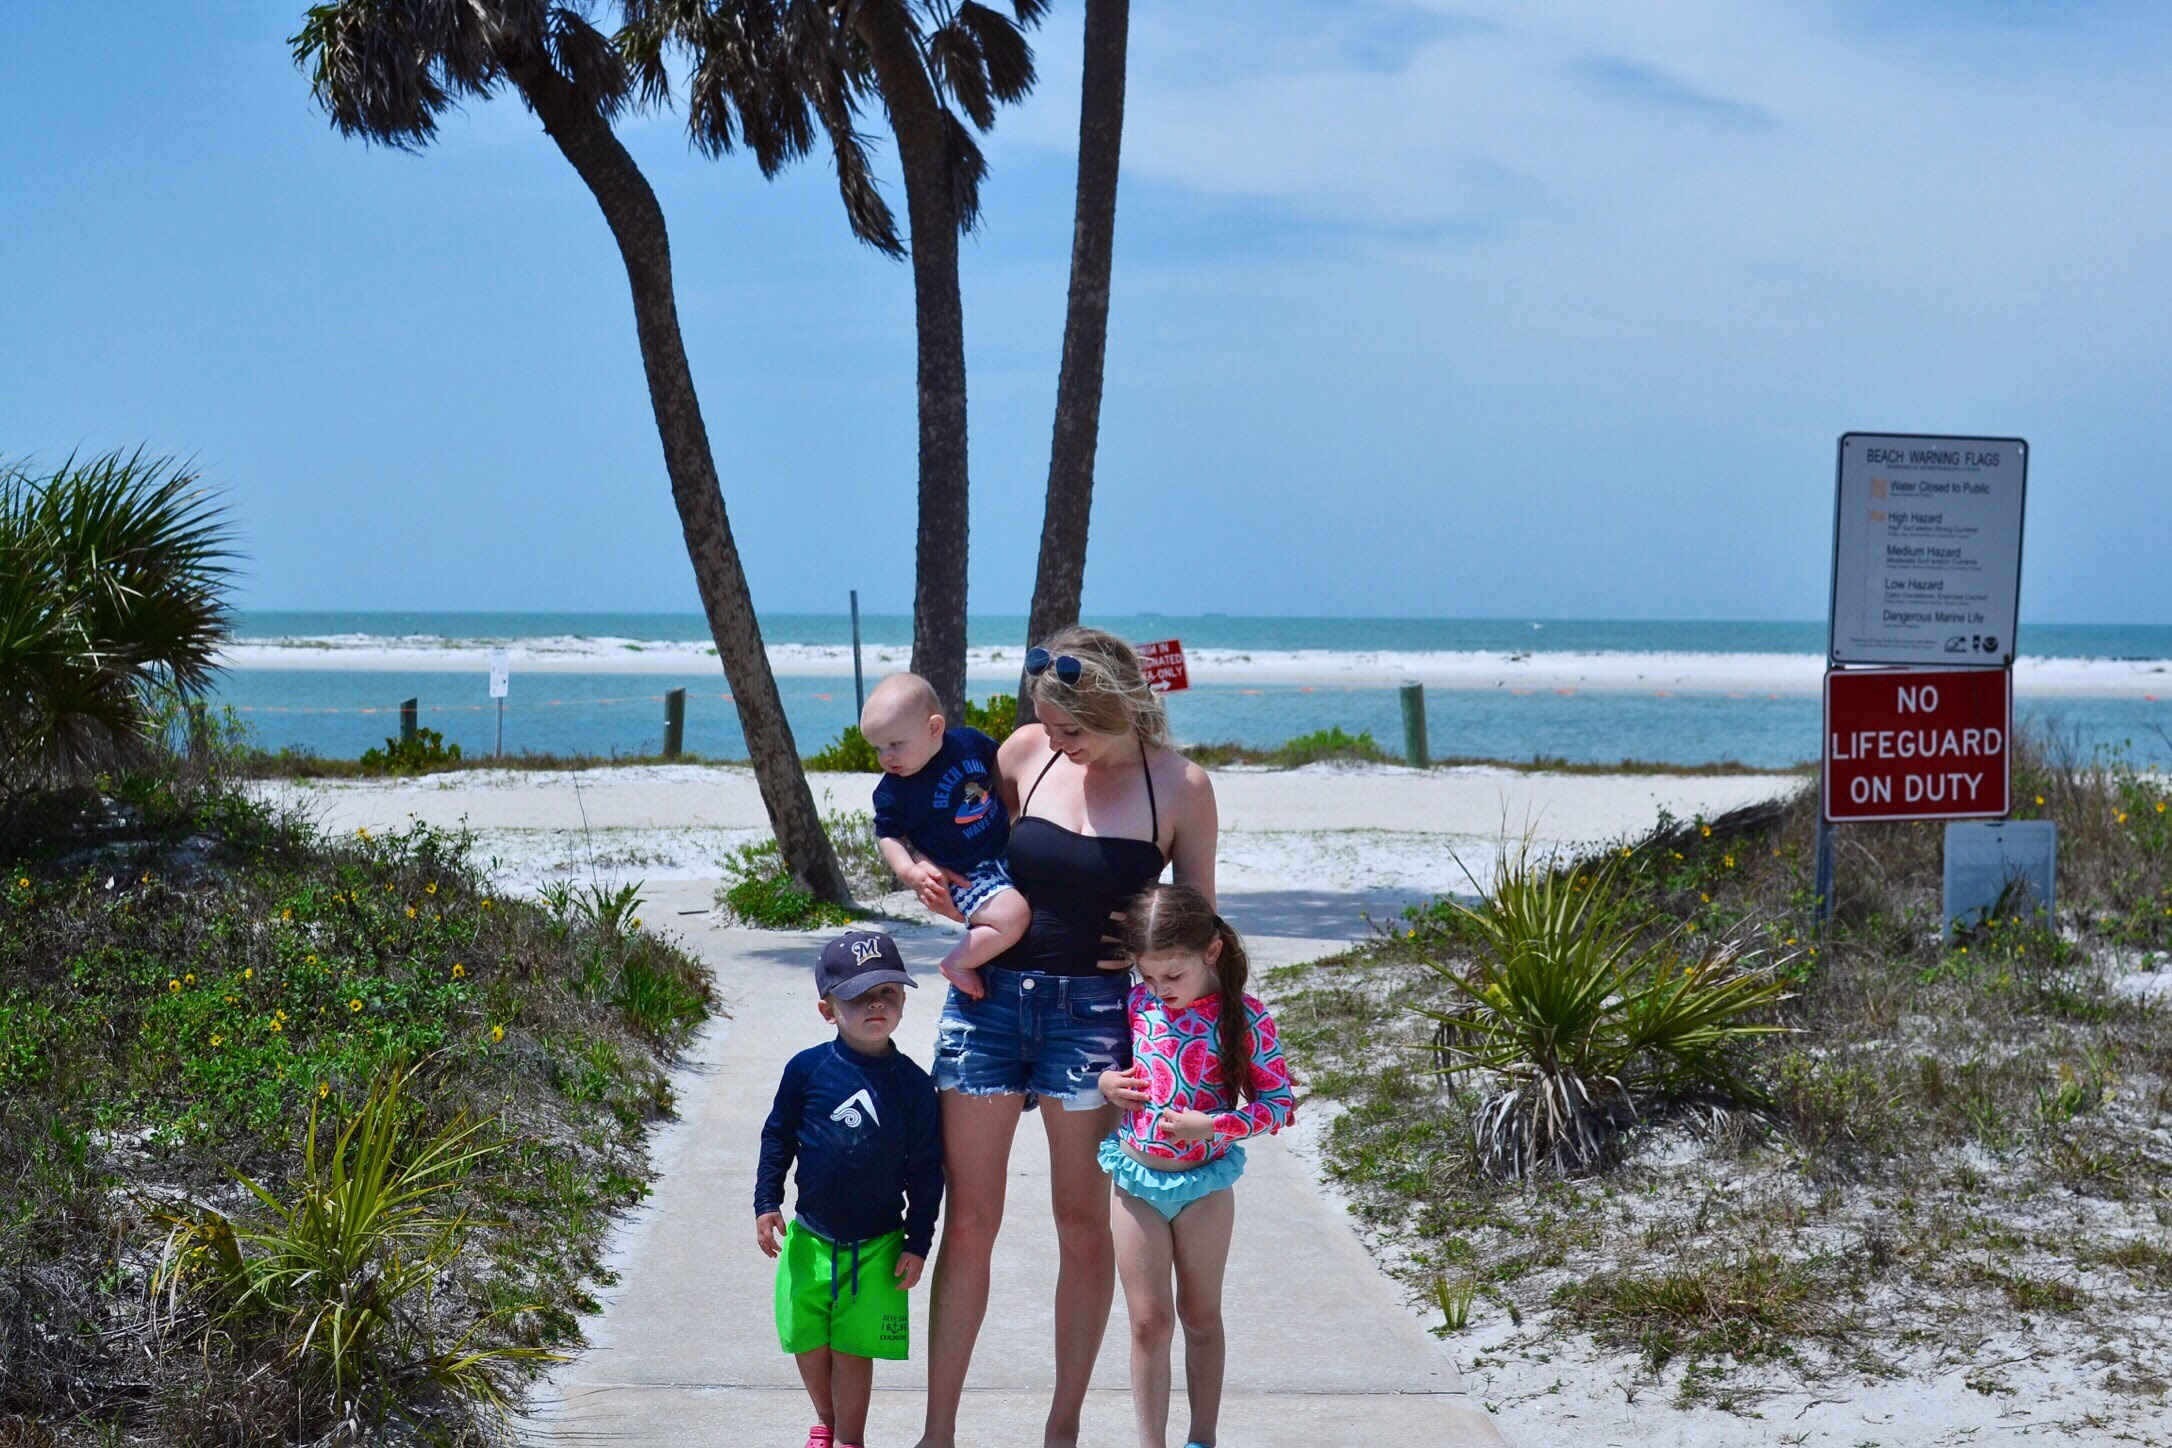 Fort De Soto Park - One of the Best Kid-friendly Beaches in the US